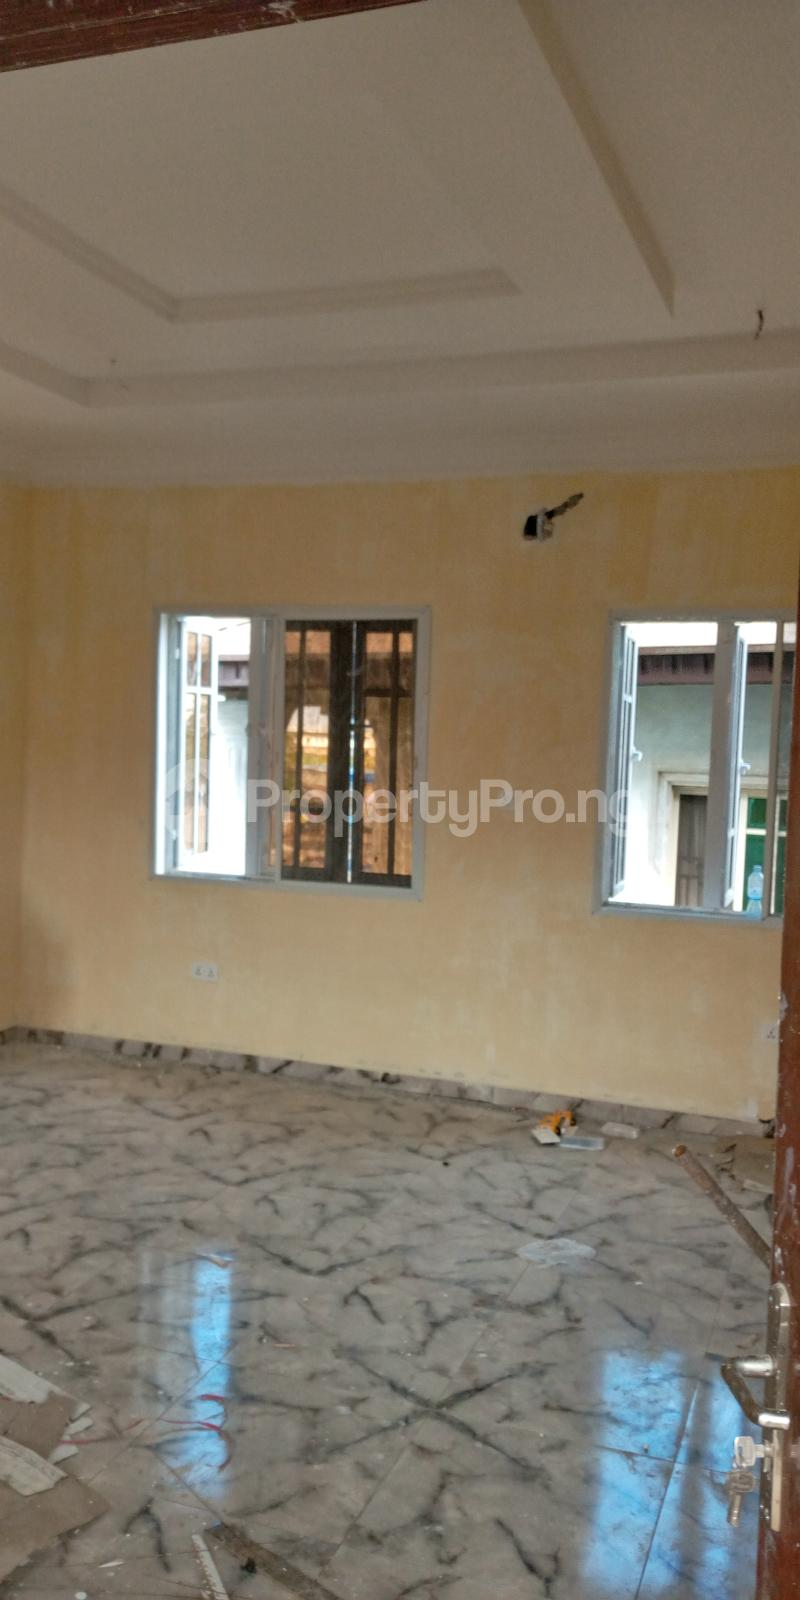 School Commercial Property for sale Eputu Ibeju-Lekki Lagos - 7